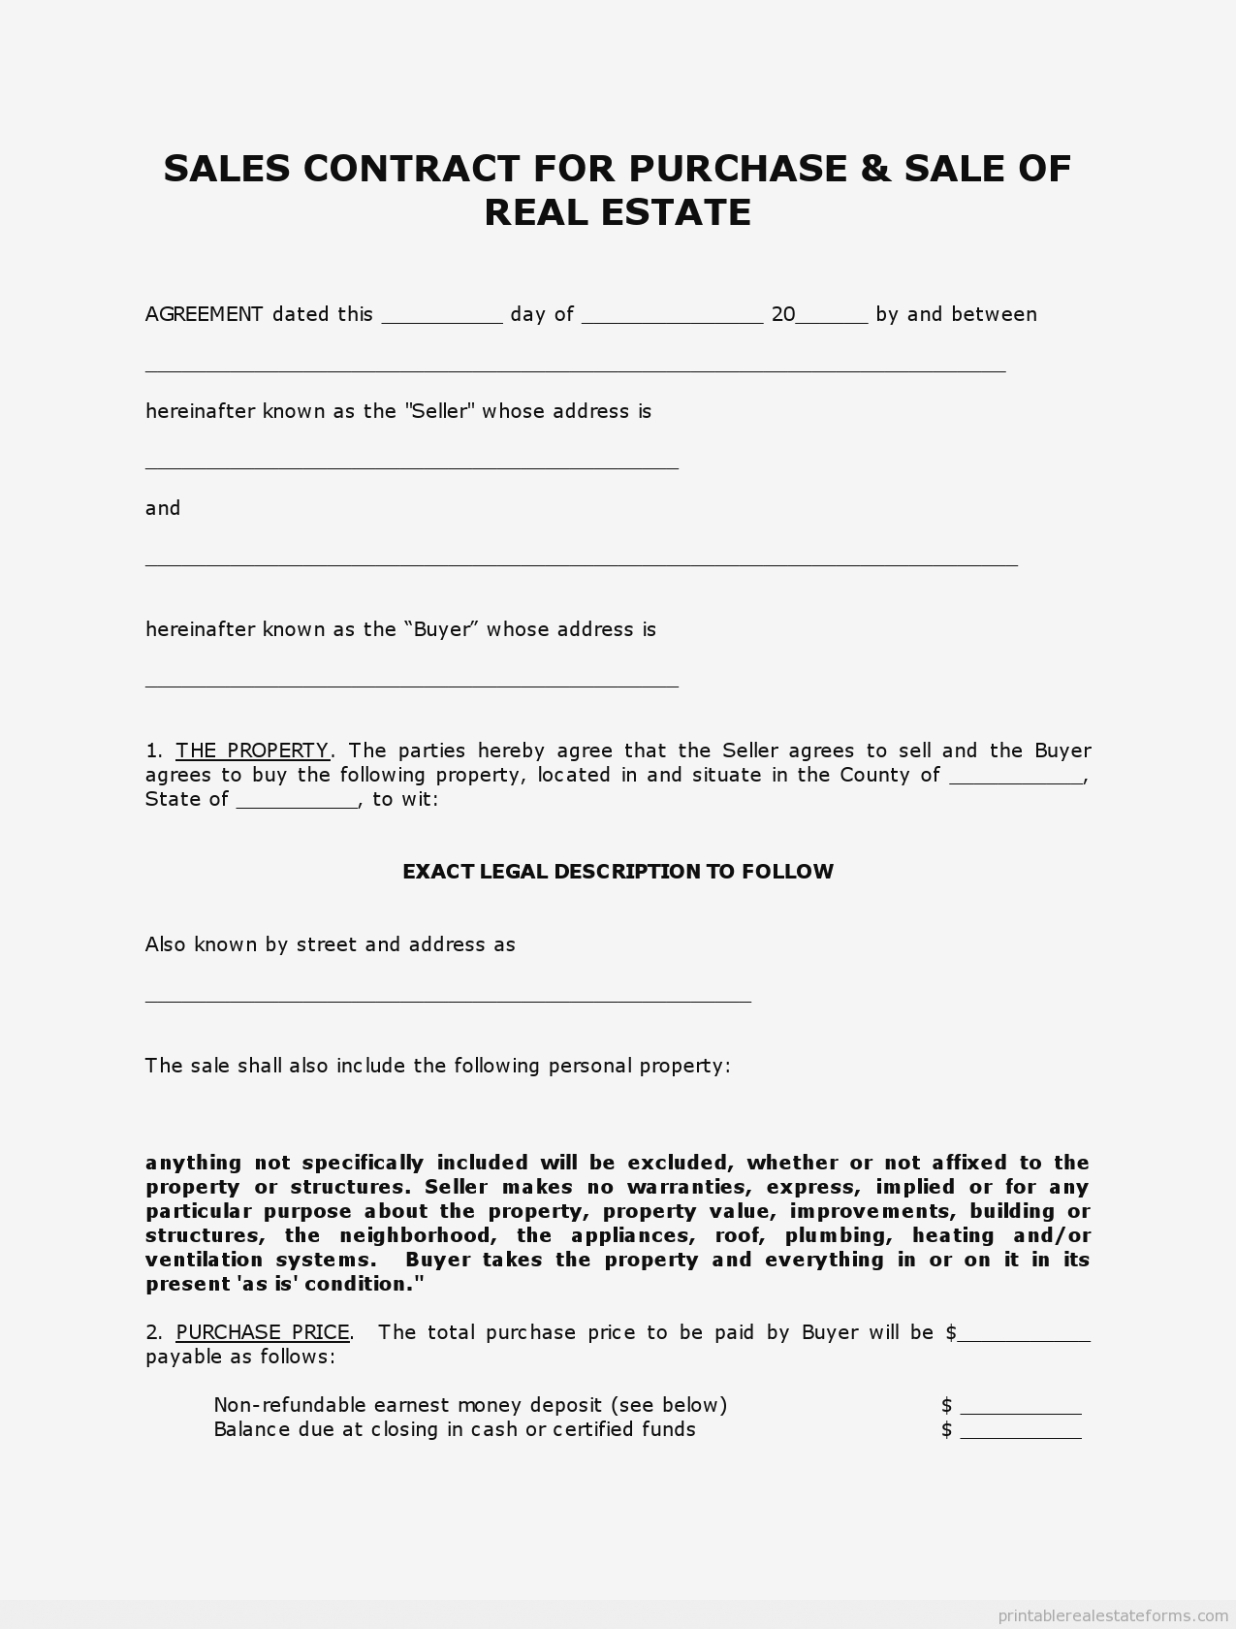 Indiana Real Estate Purchase Agreement 10 Simple Free Printable - Free Printable Real Estate Forms